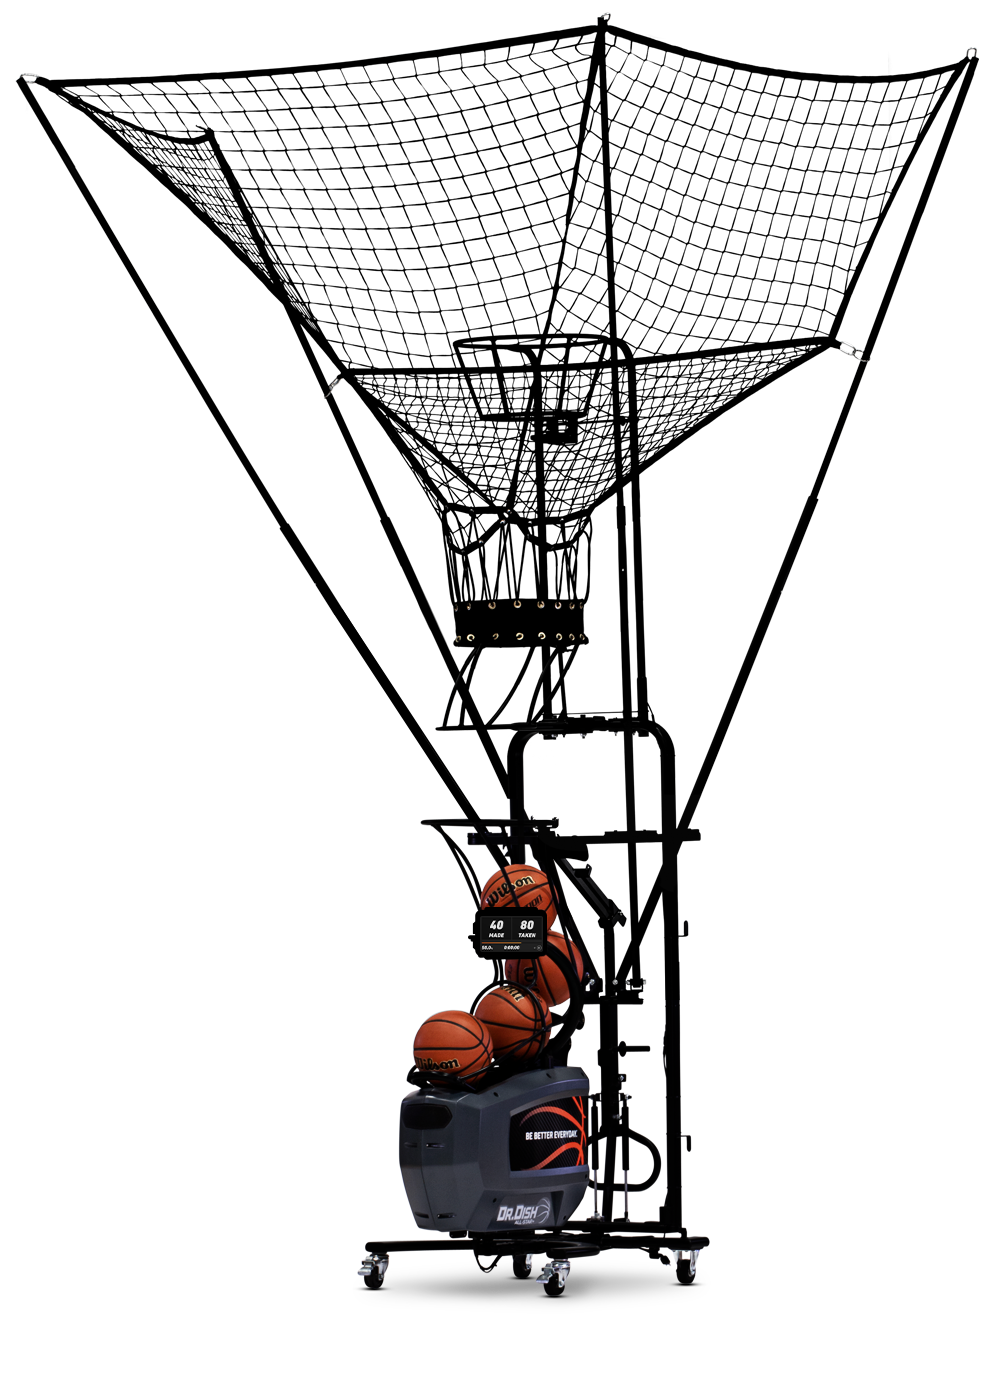 Dr. Dish All-Star+ Basketball Shooting Machine